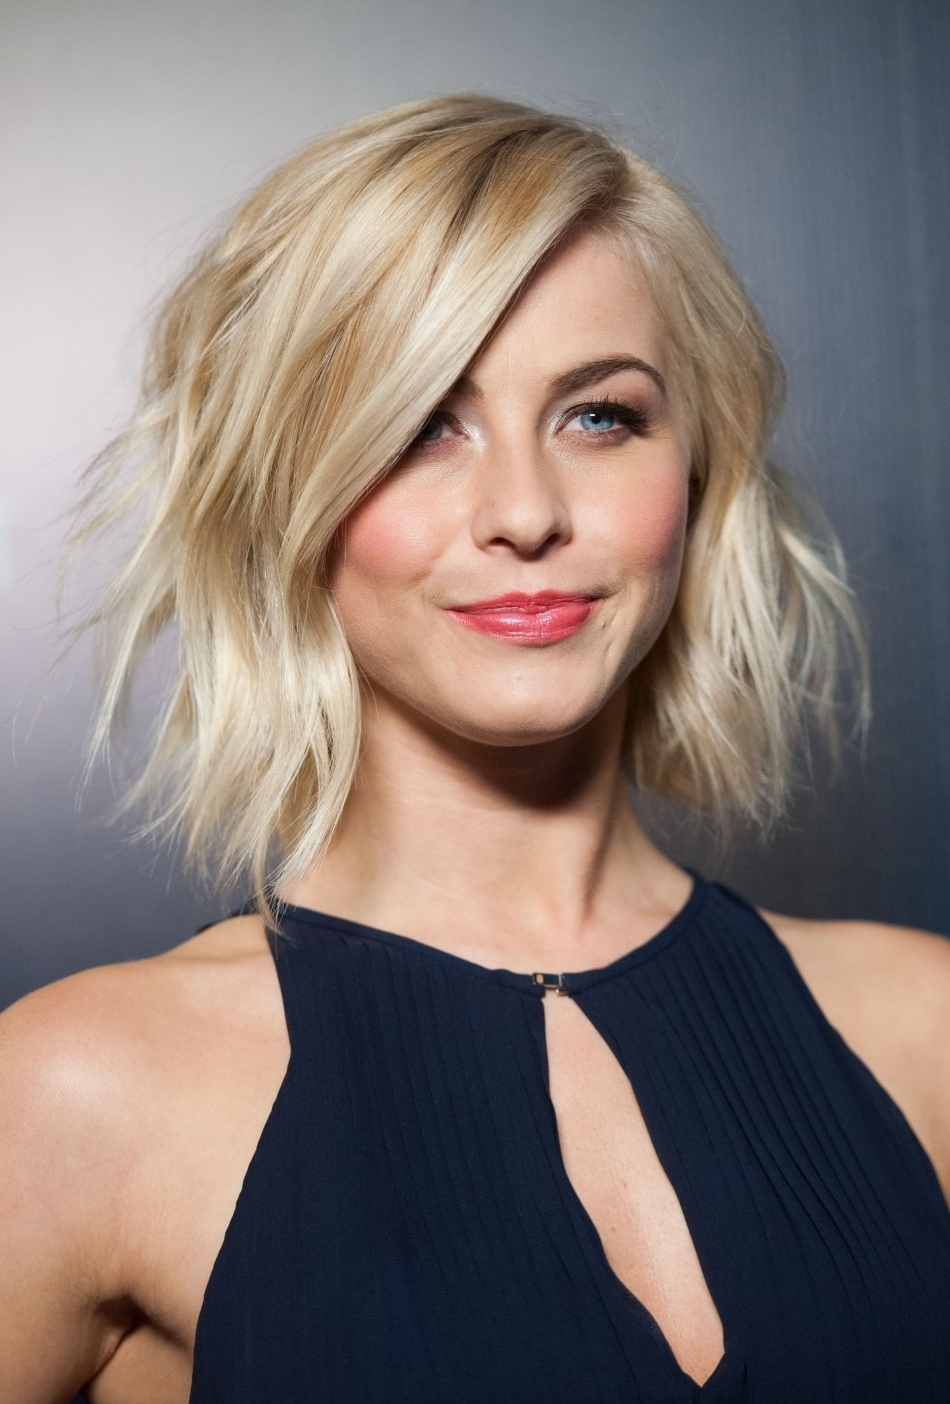 Gallery Of Julianne Hough Pixie Hairstyles View 7 Of 16 Photos